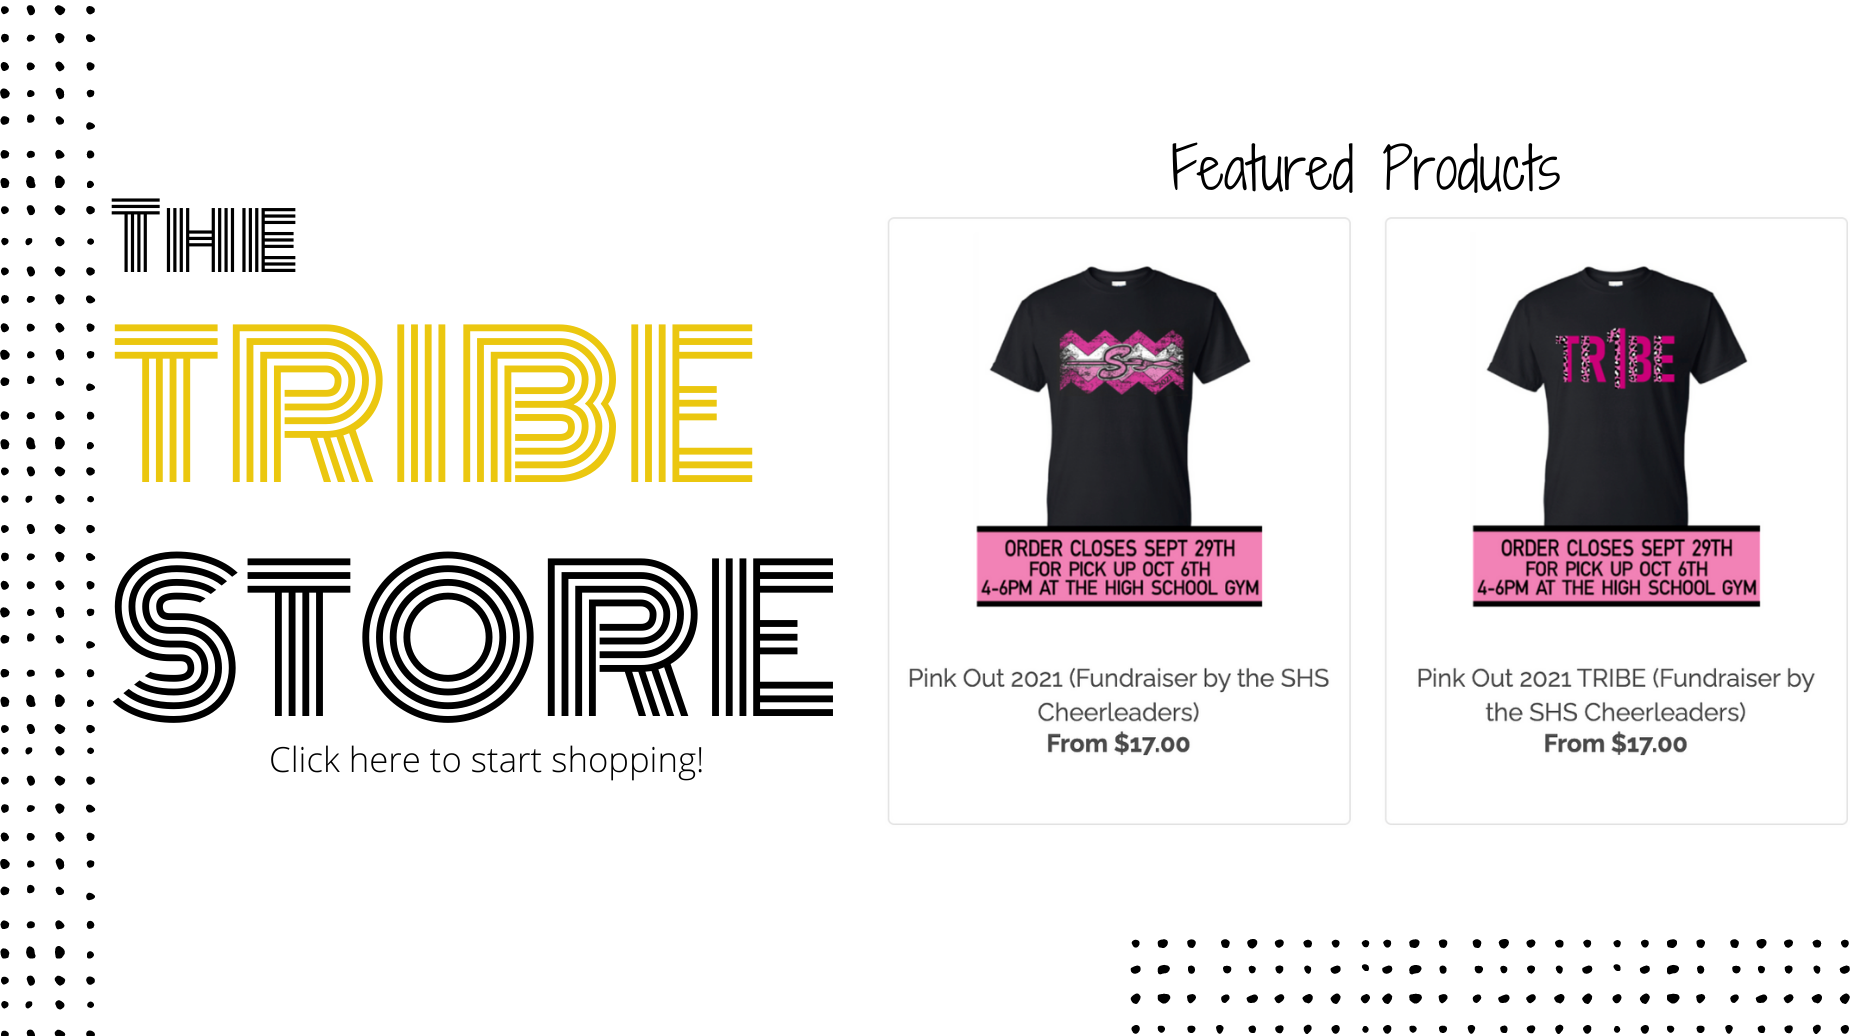 tribe store featured products